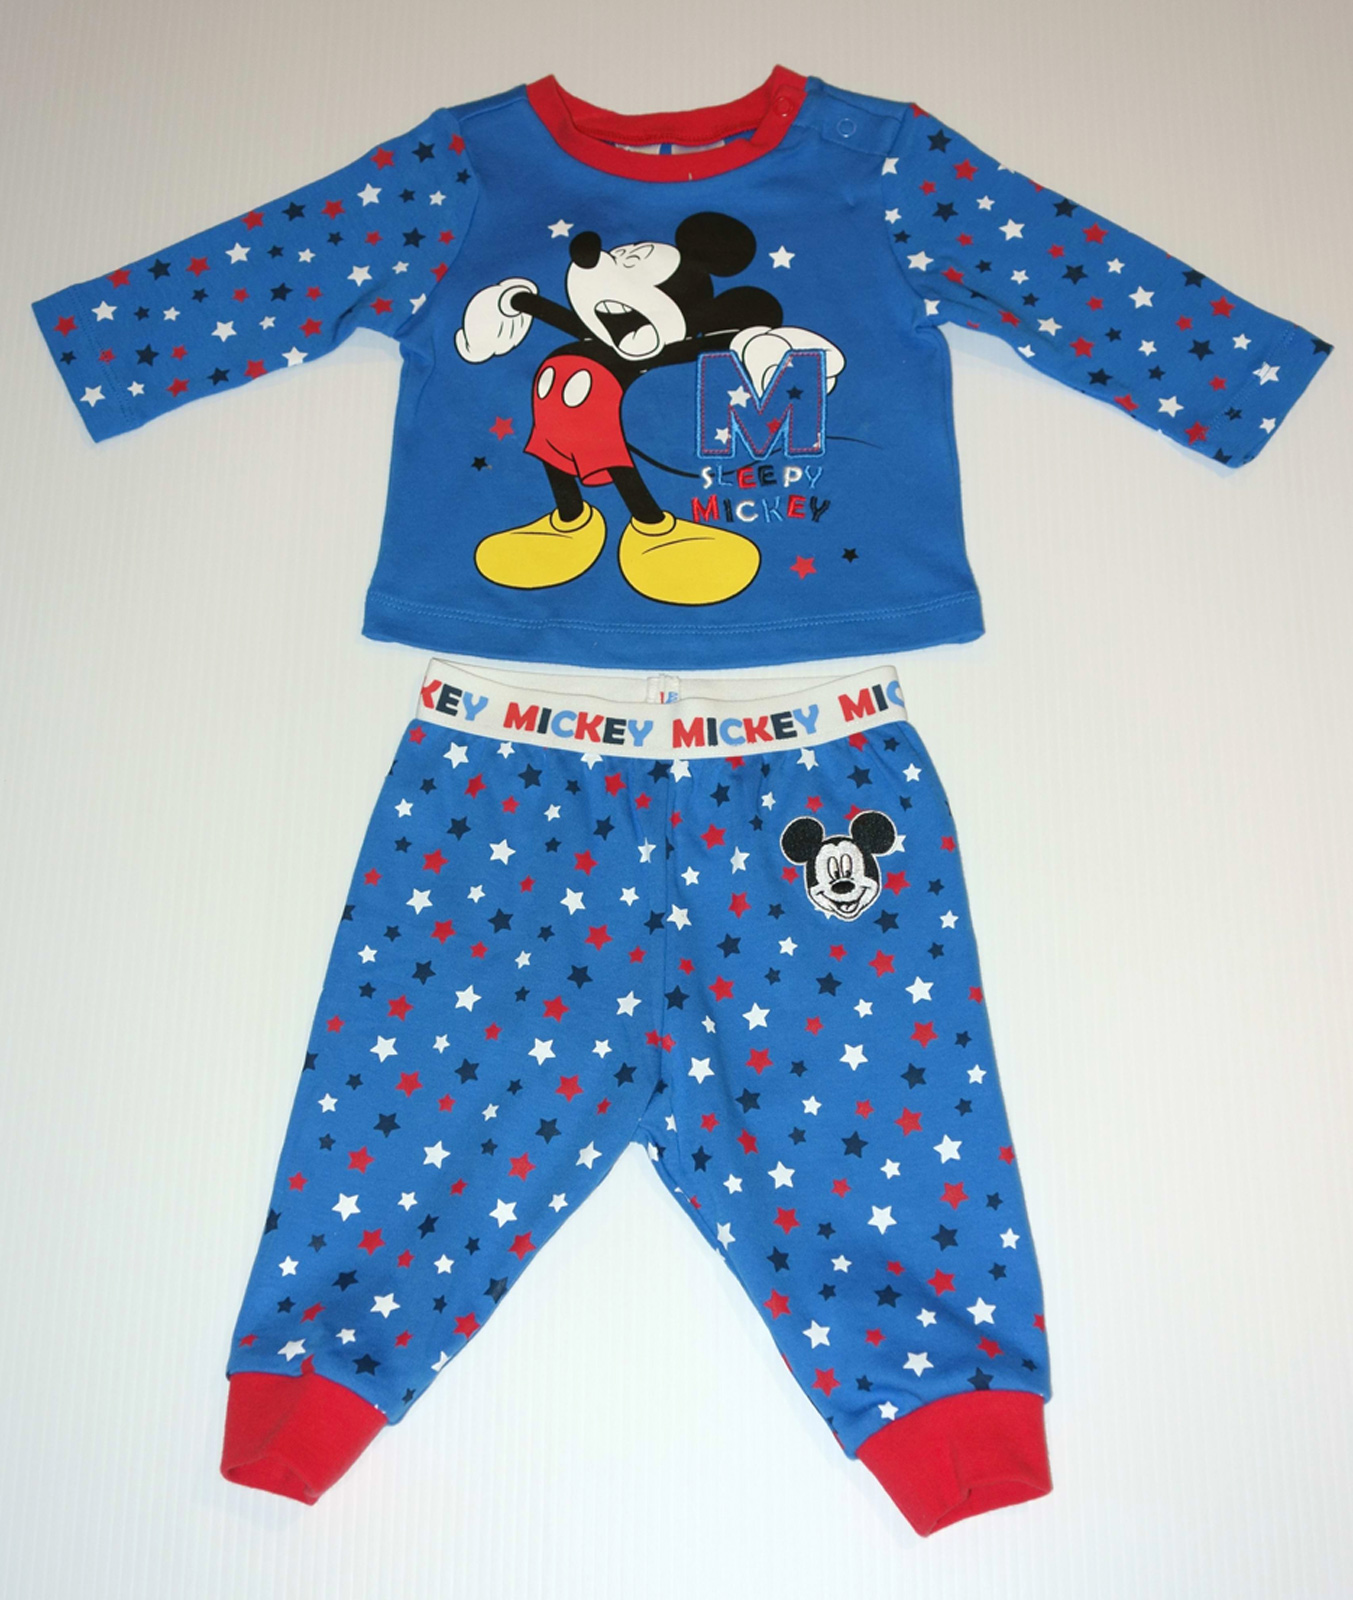 Boys Pyjamas in sizes 0 to 14 in all the hottest styles! Warm flannel pjs to cool summer cotton sets.